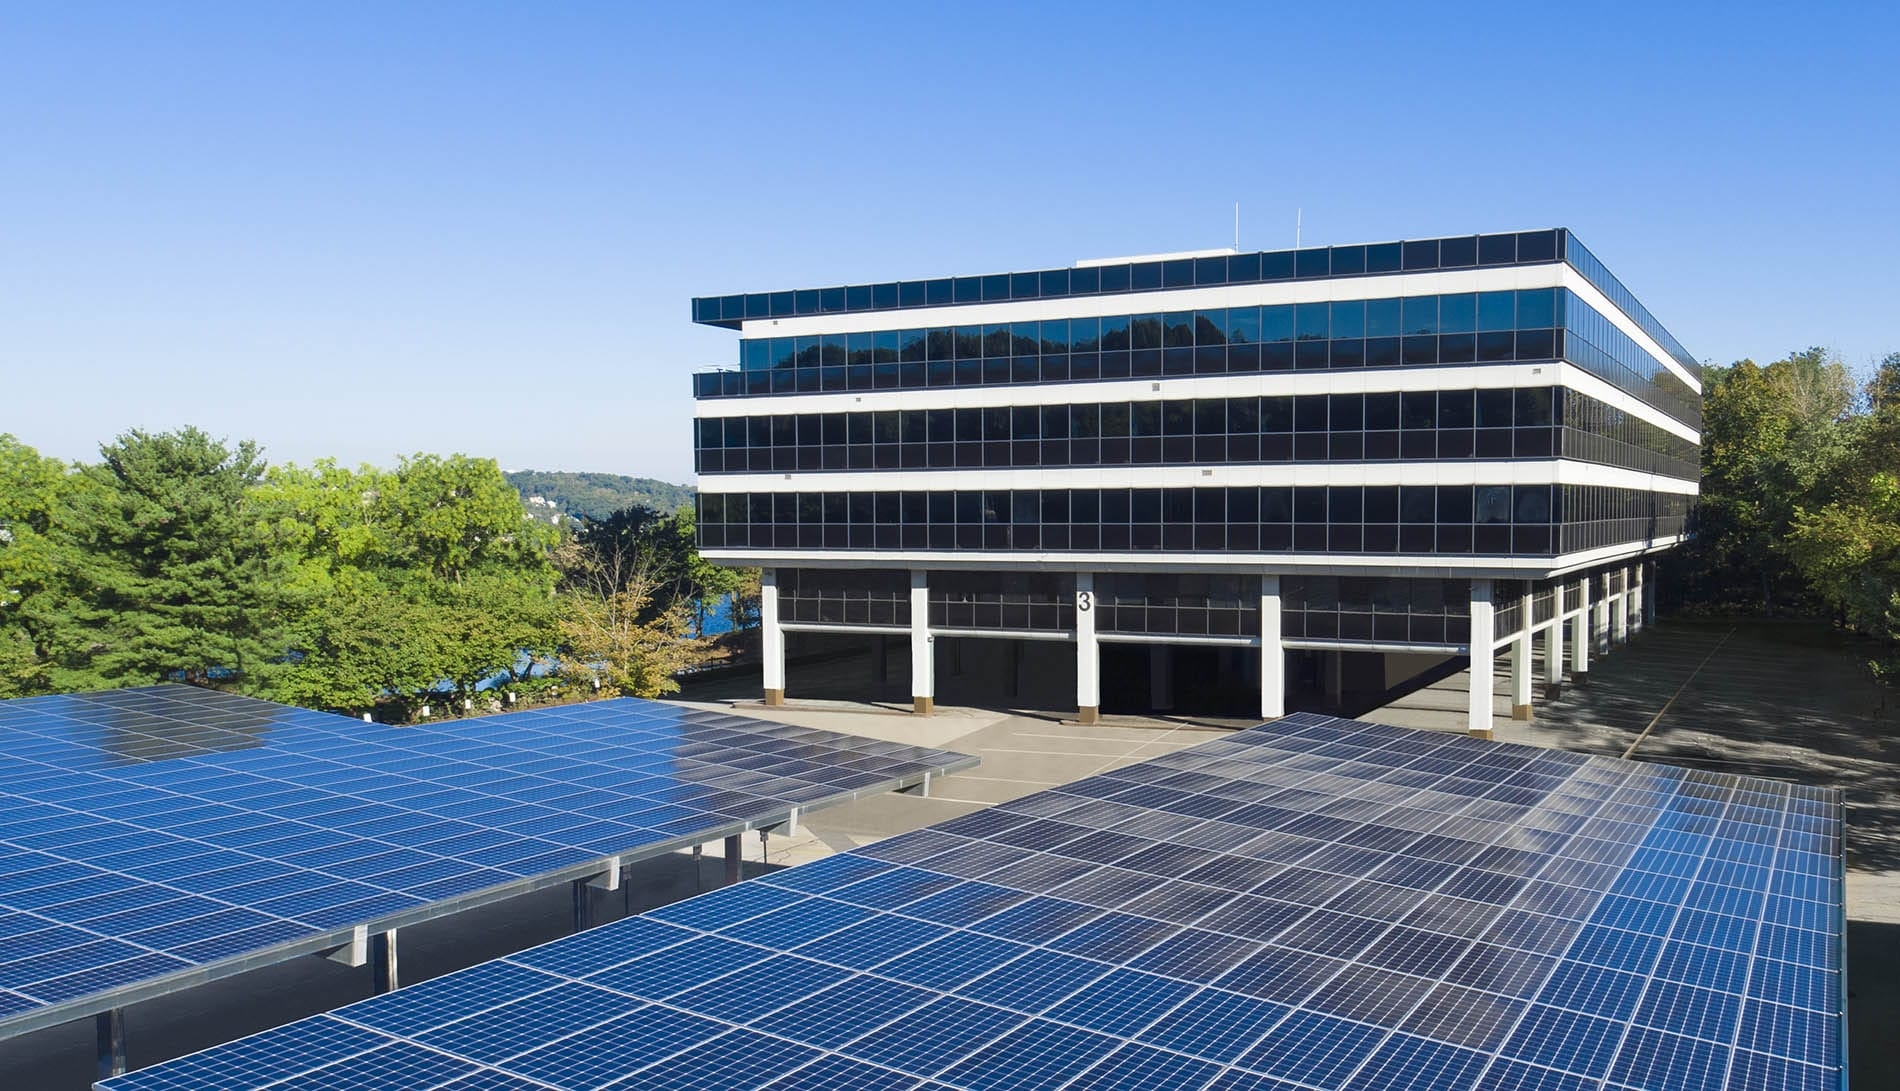 Drone Photograph taken of Commercial Building with Solar Panel Parking Lot in New Jersey